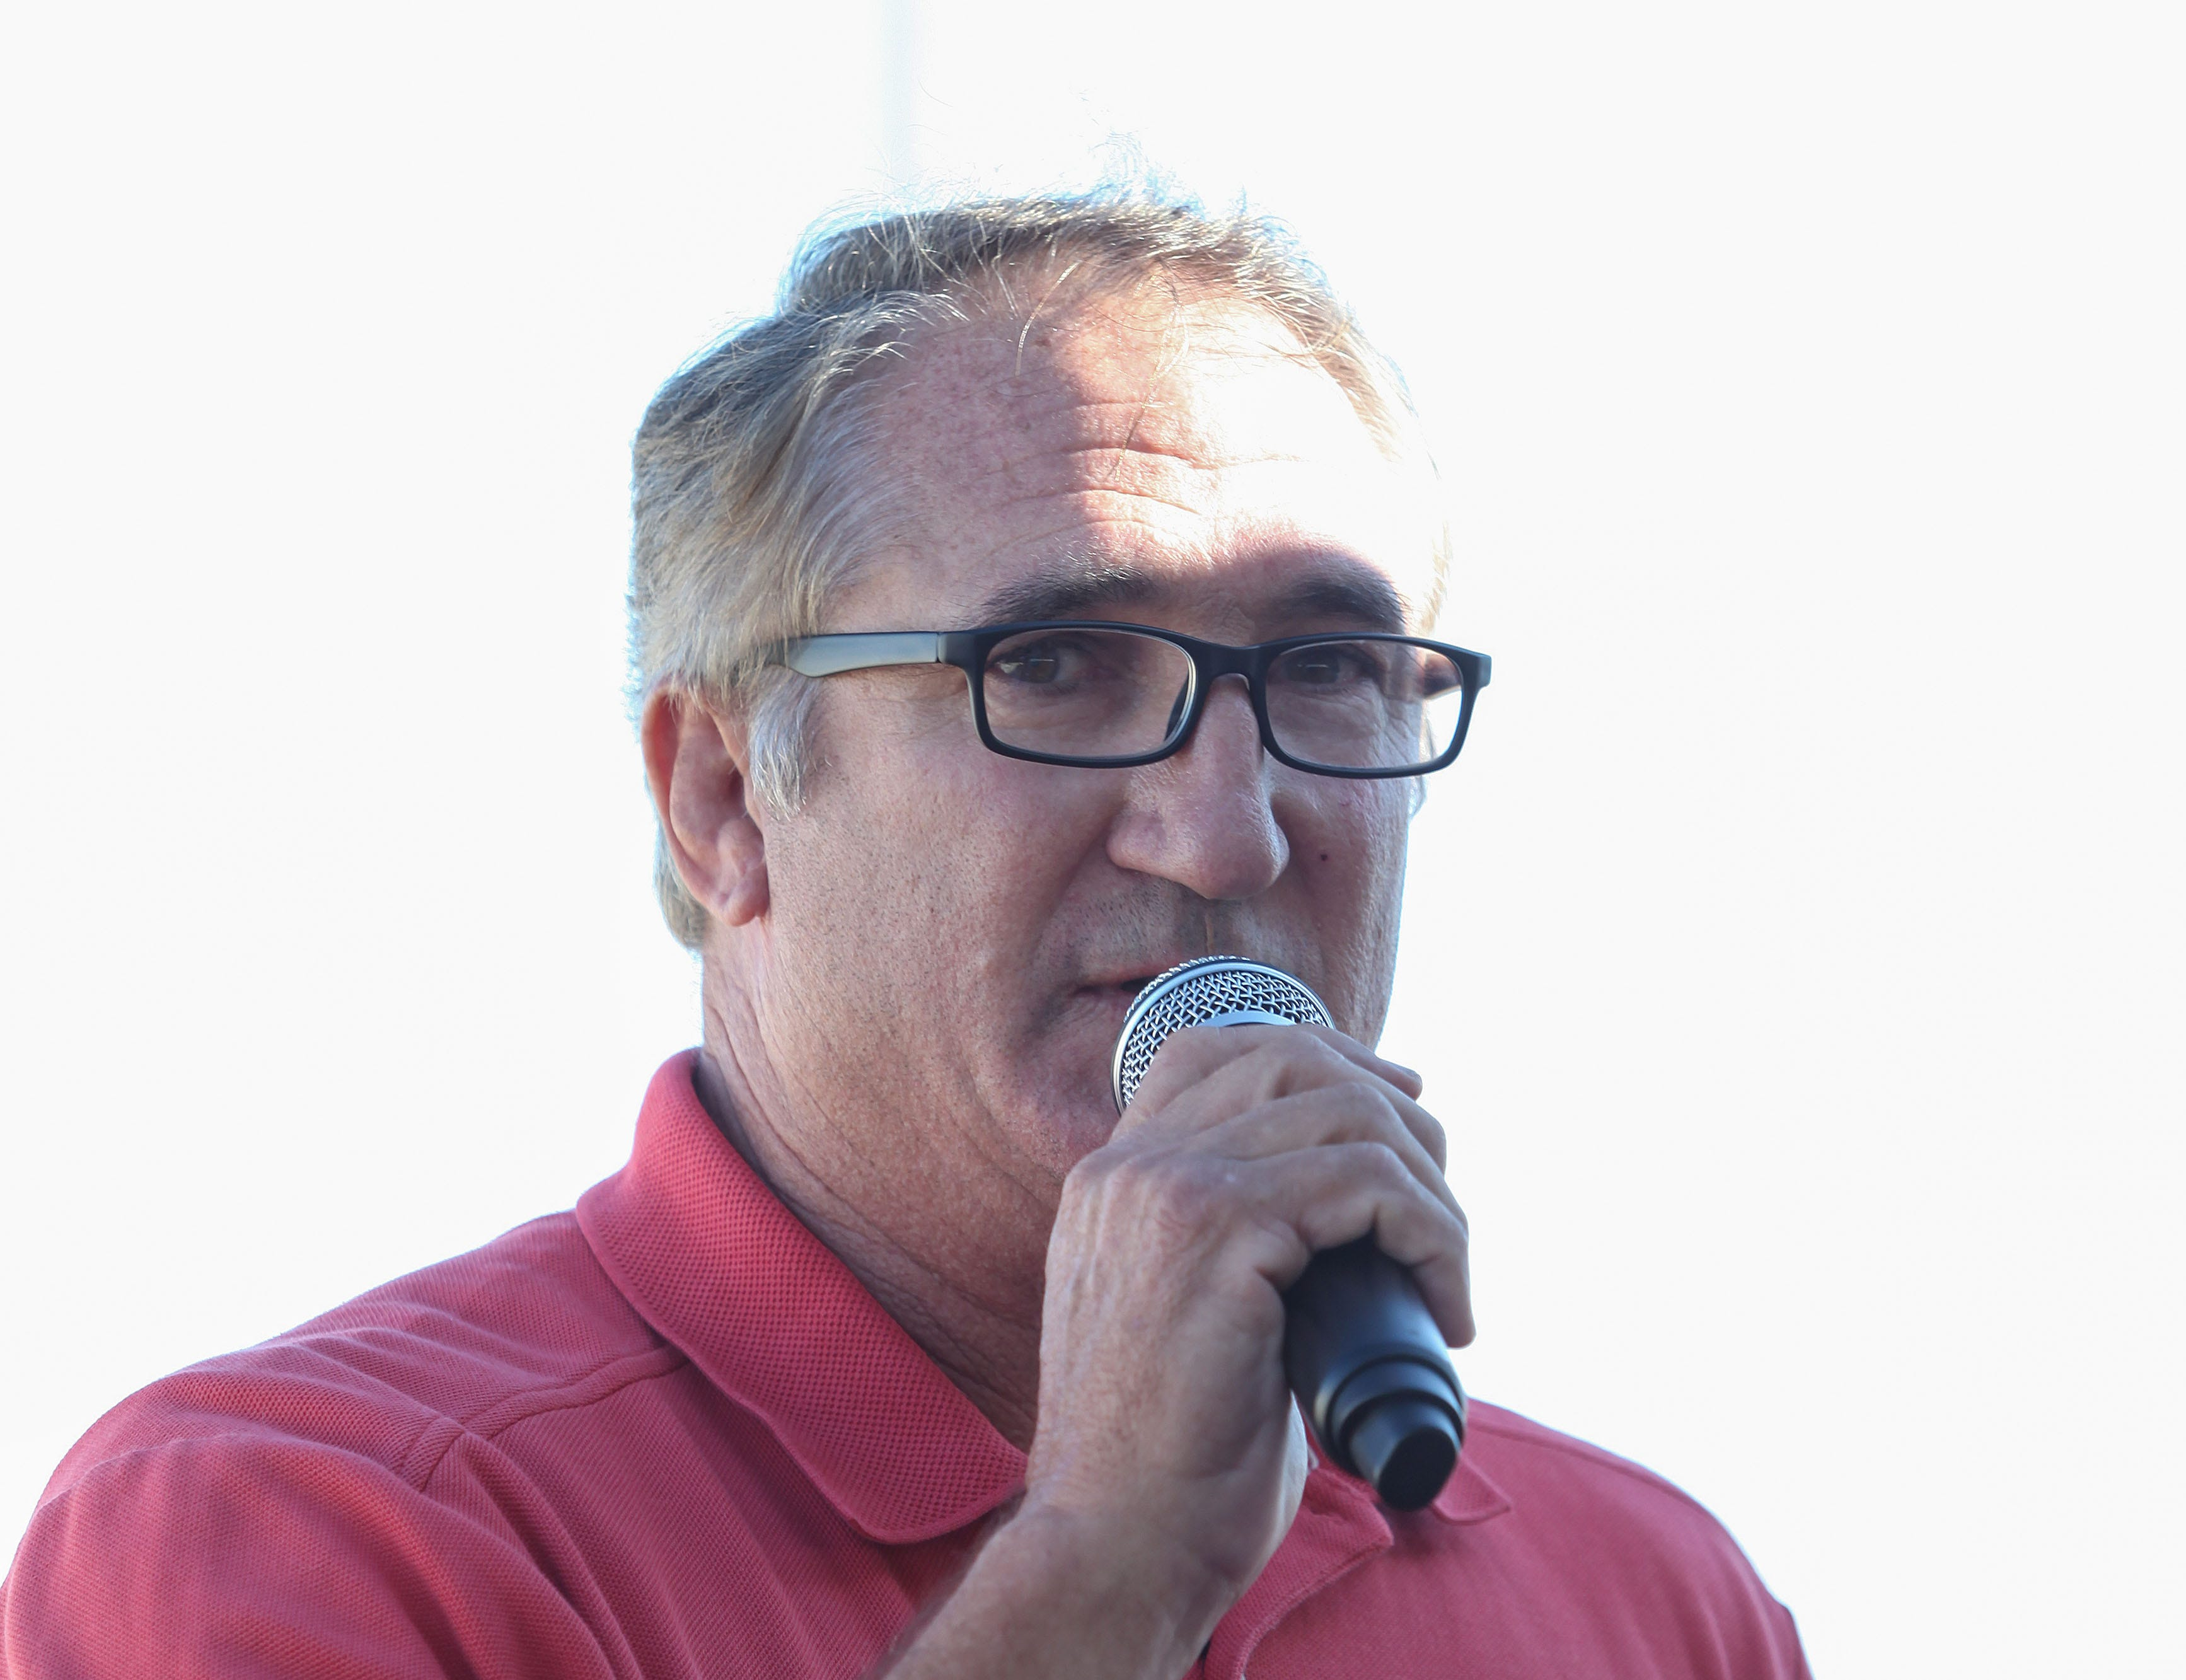 Mike Abatti speaks at a dedication ceremony for the Imperial Irrigation District's battery storage project on Oct. 26, 2016.